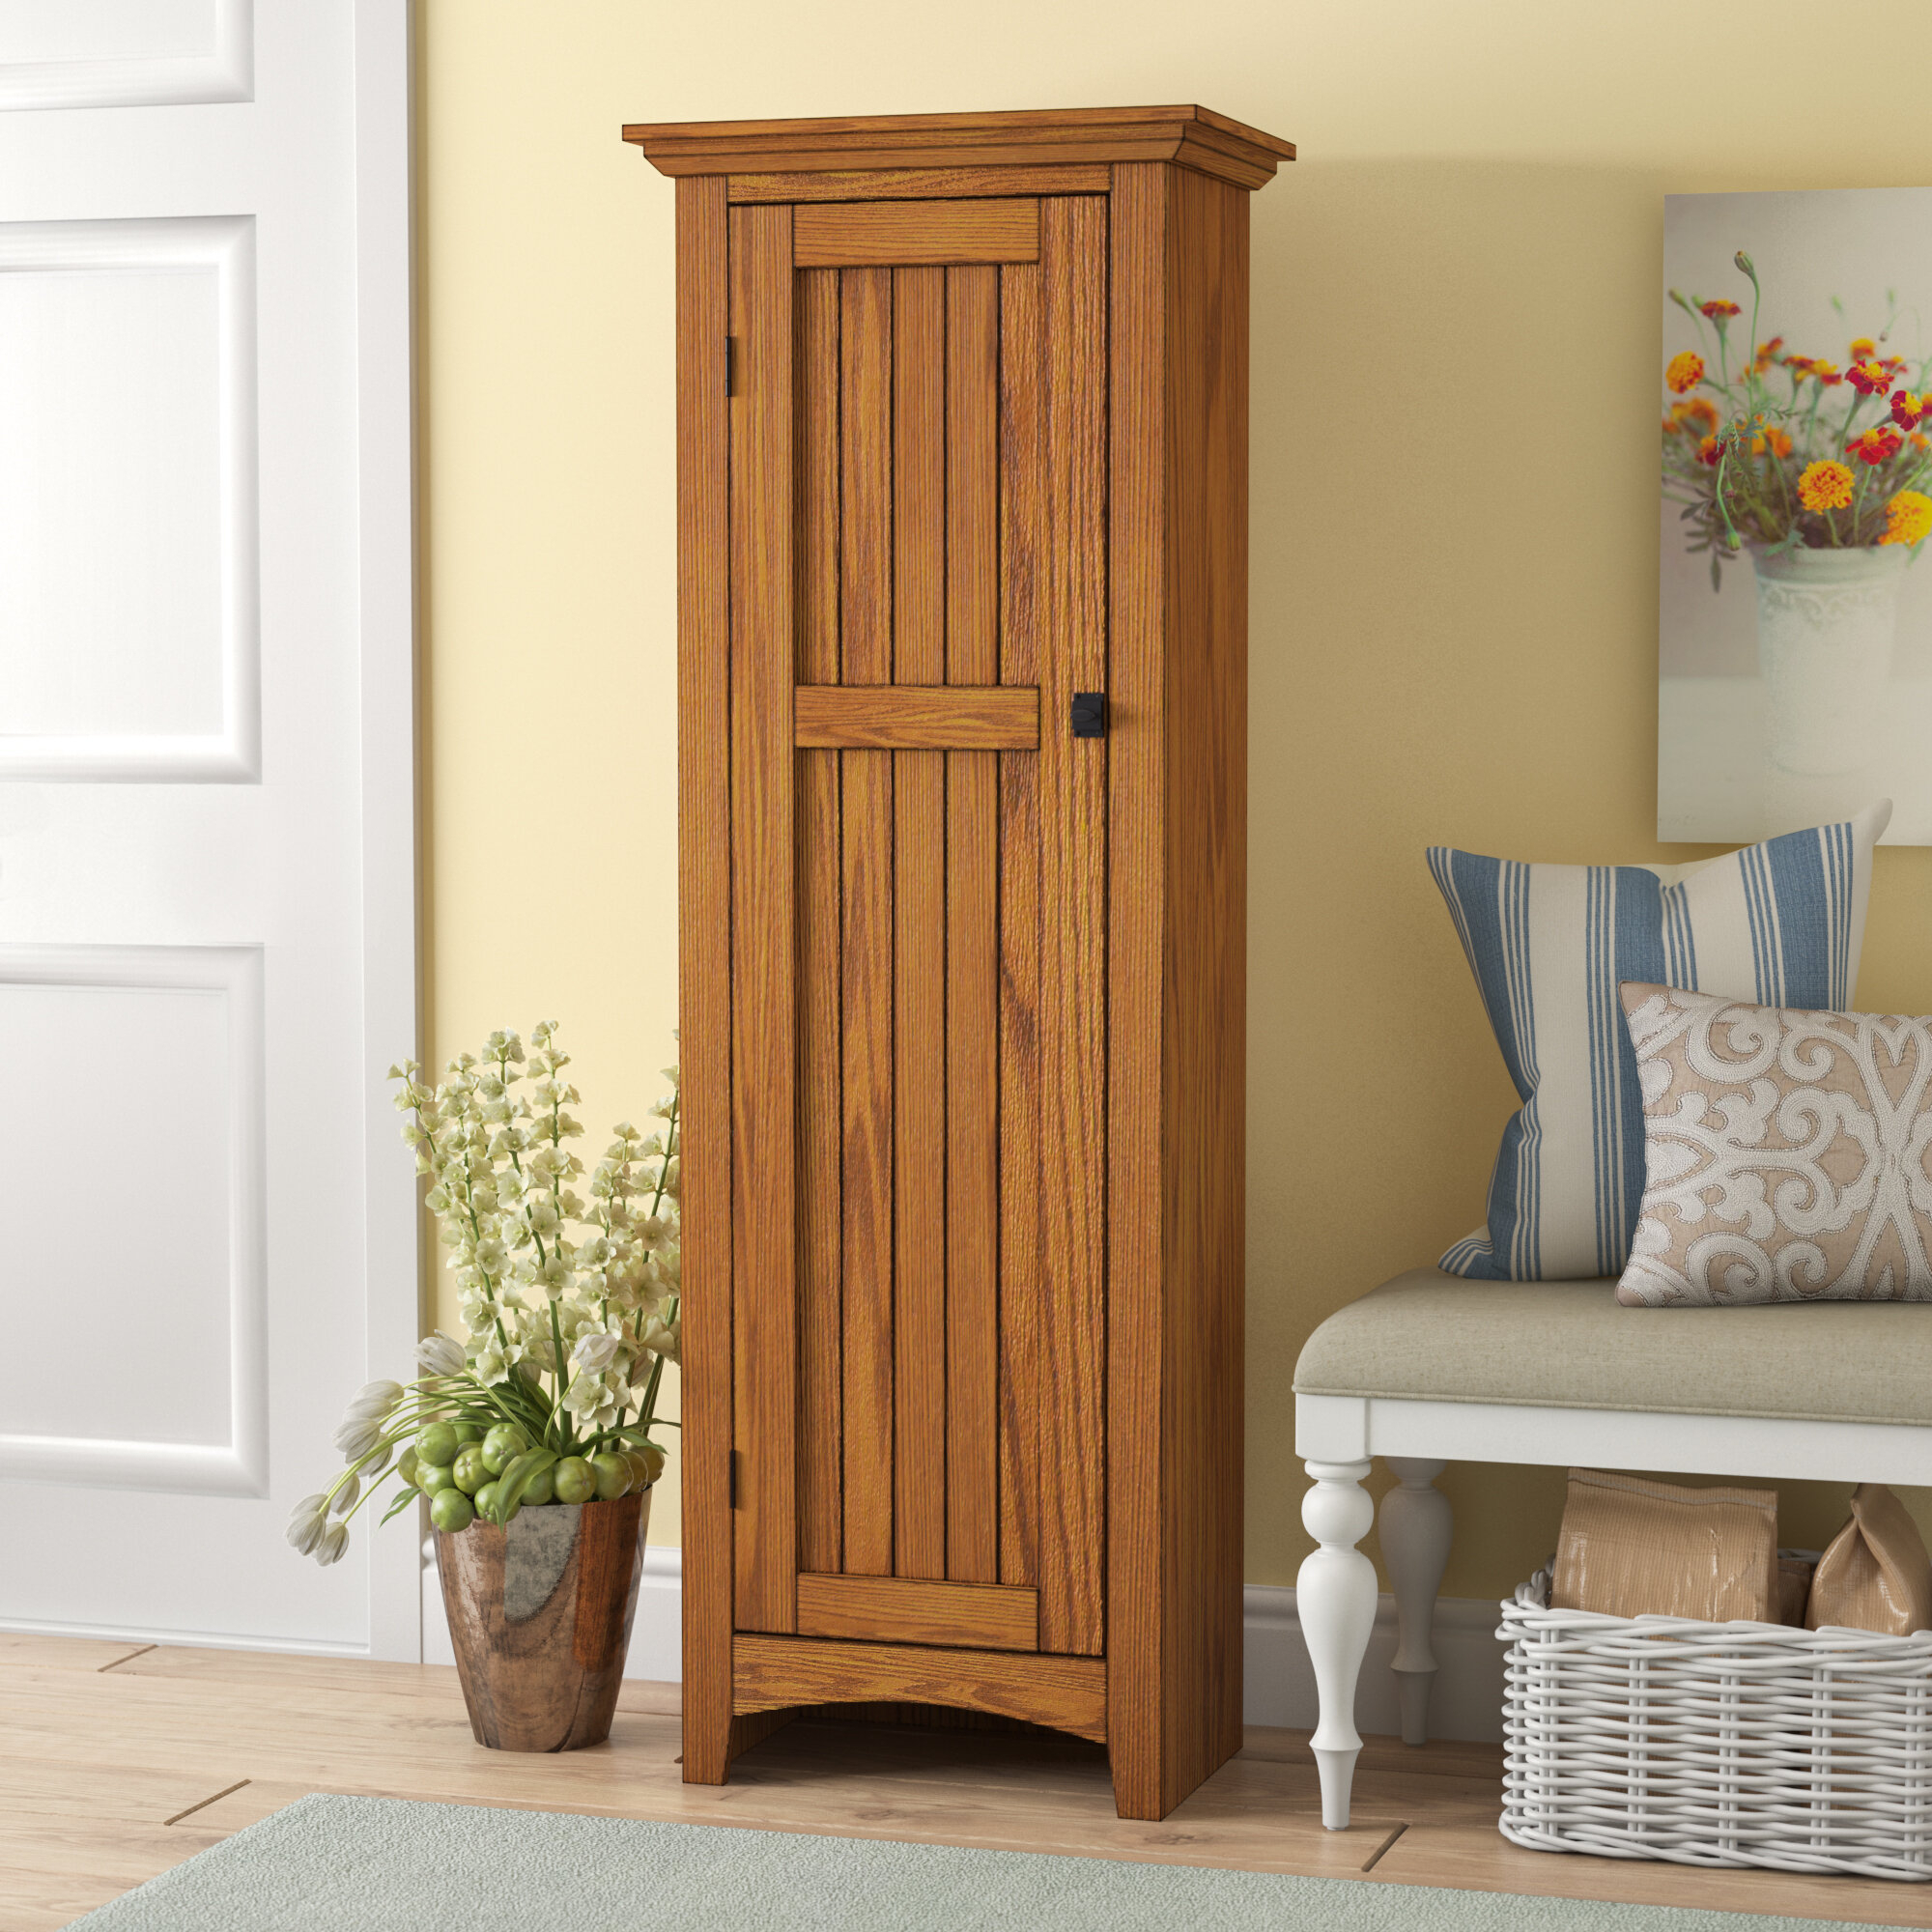 Wood Kitchen Pantry Cabinet Ideas On Foter